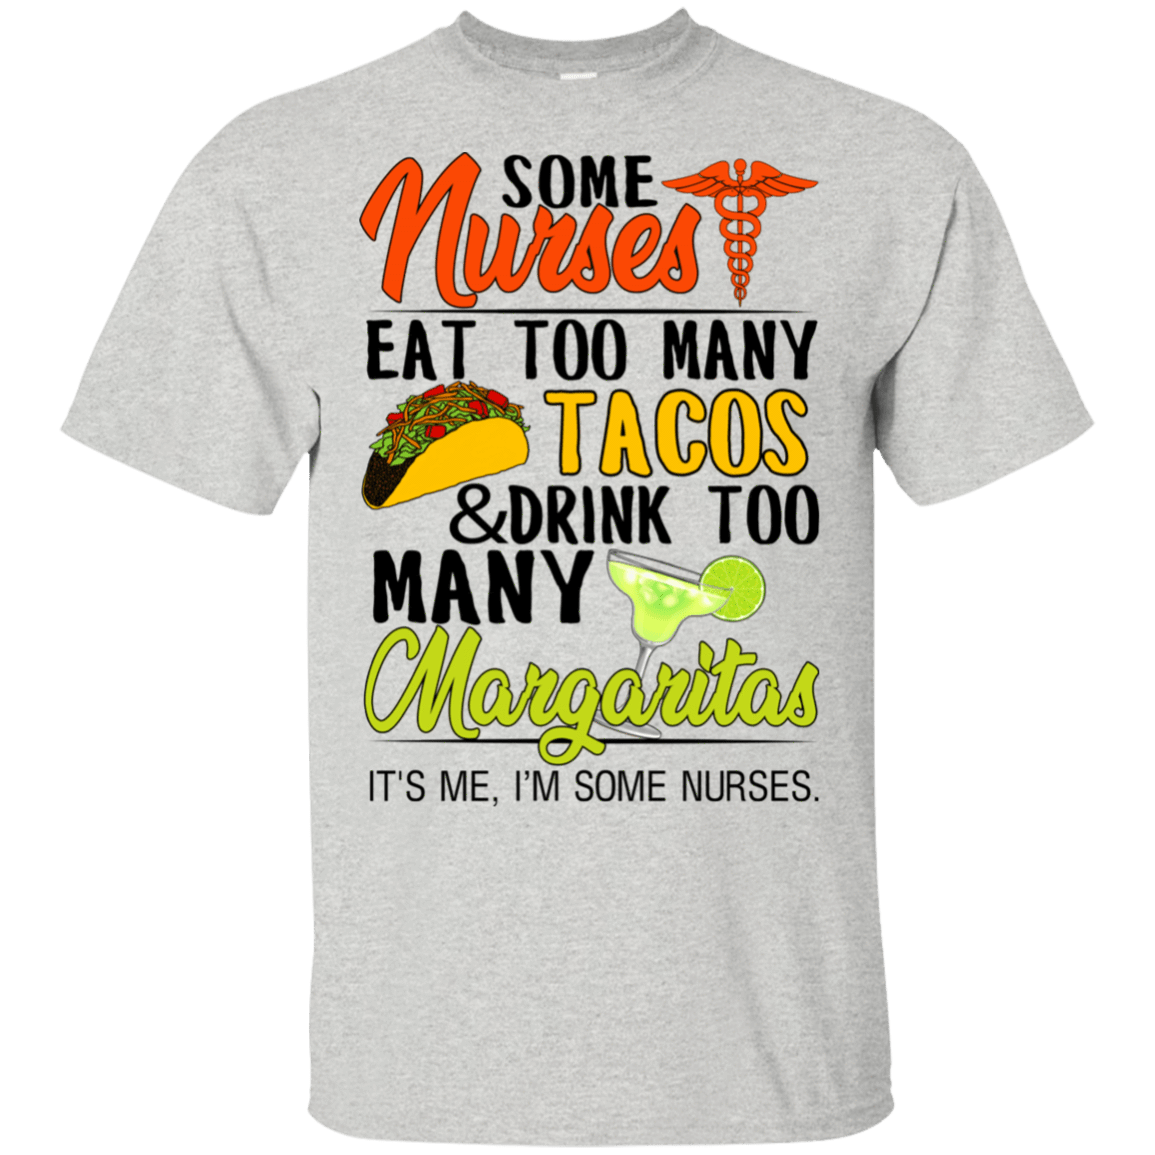 Some Nurses Eat Too Many Tacos & Drink Too Many Margaritas It's Me I'm Some Nurses T-Shirts & Hoodies 22-2475-76452264-12568 - Tee Ript